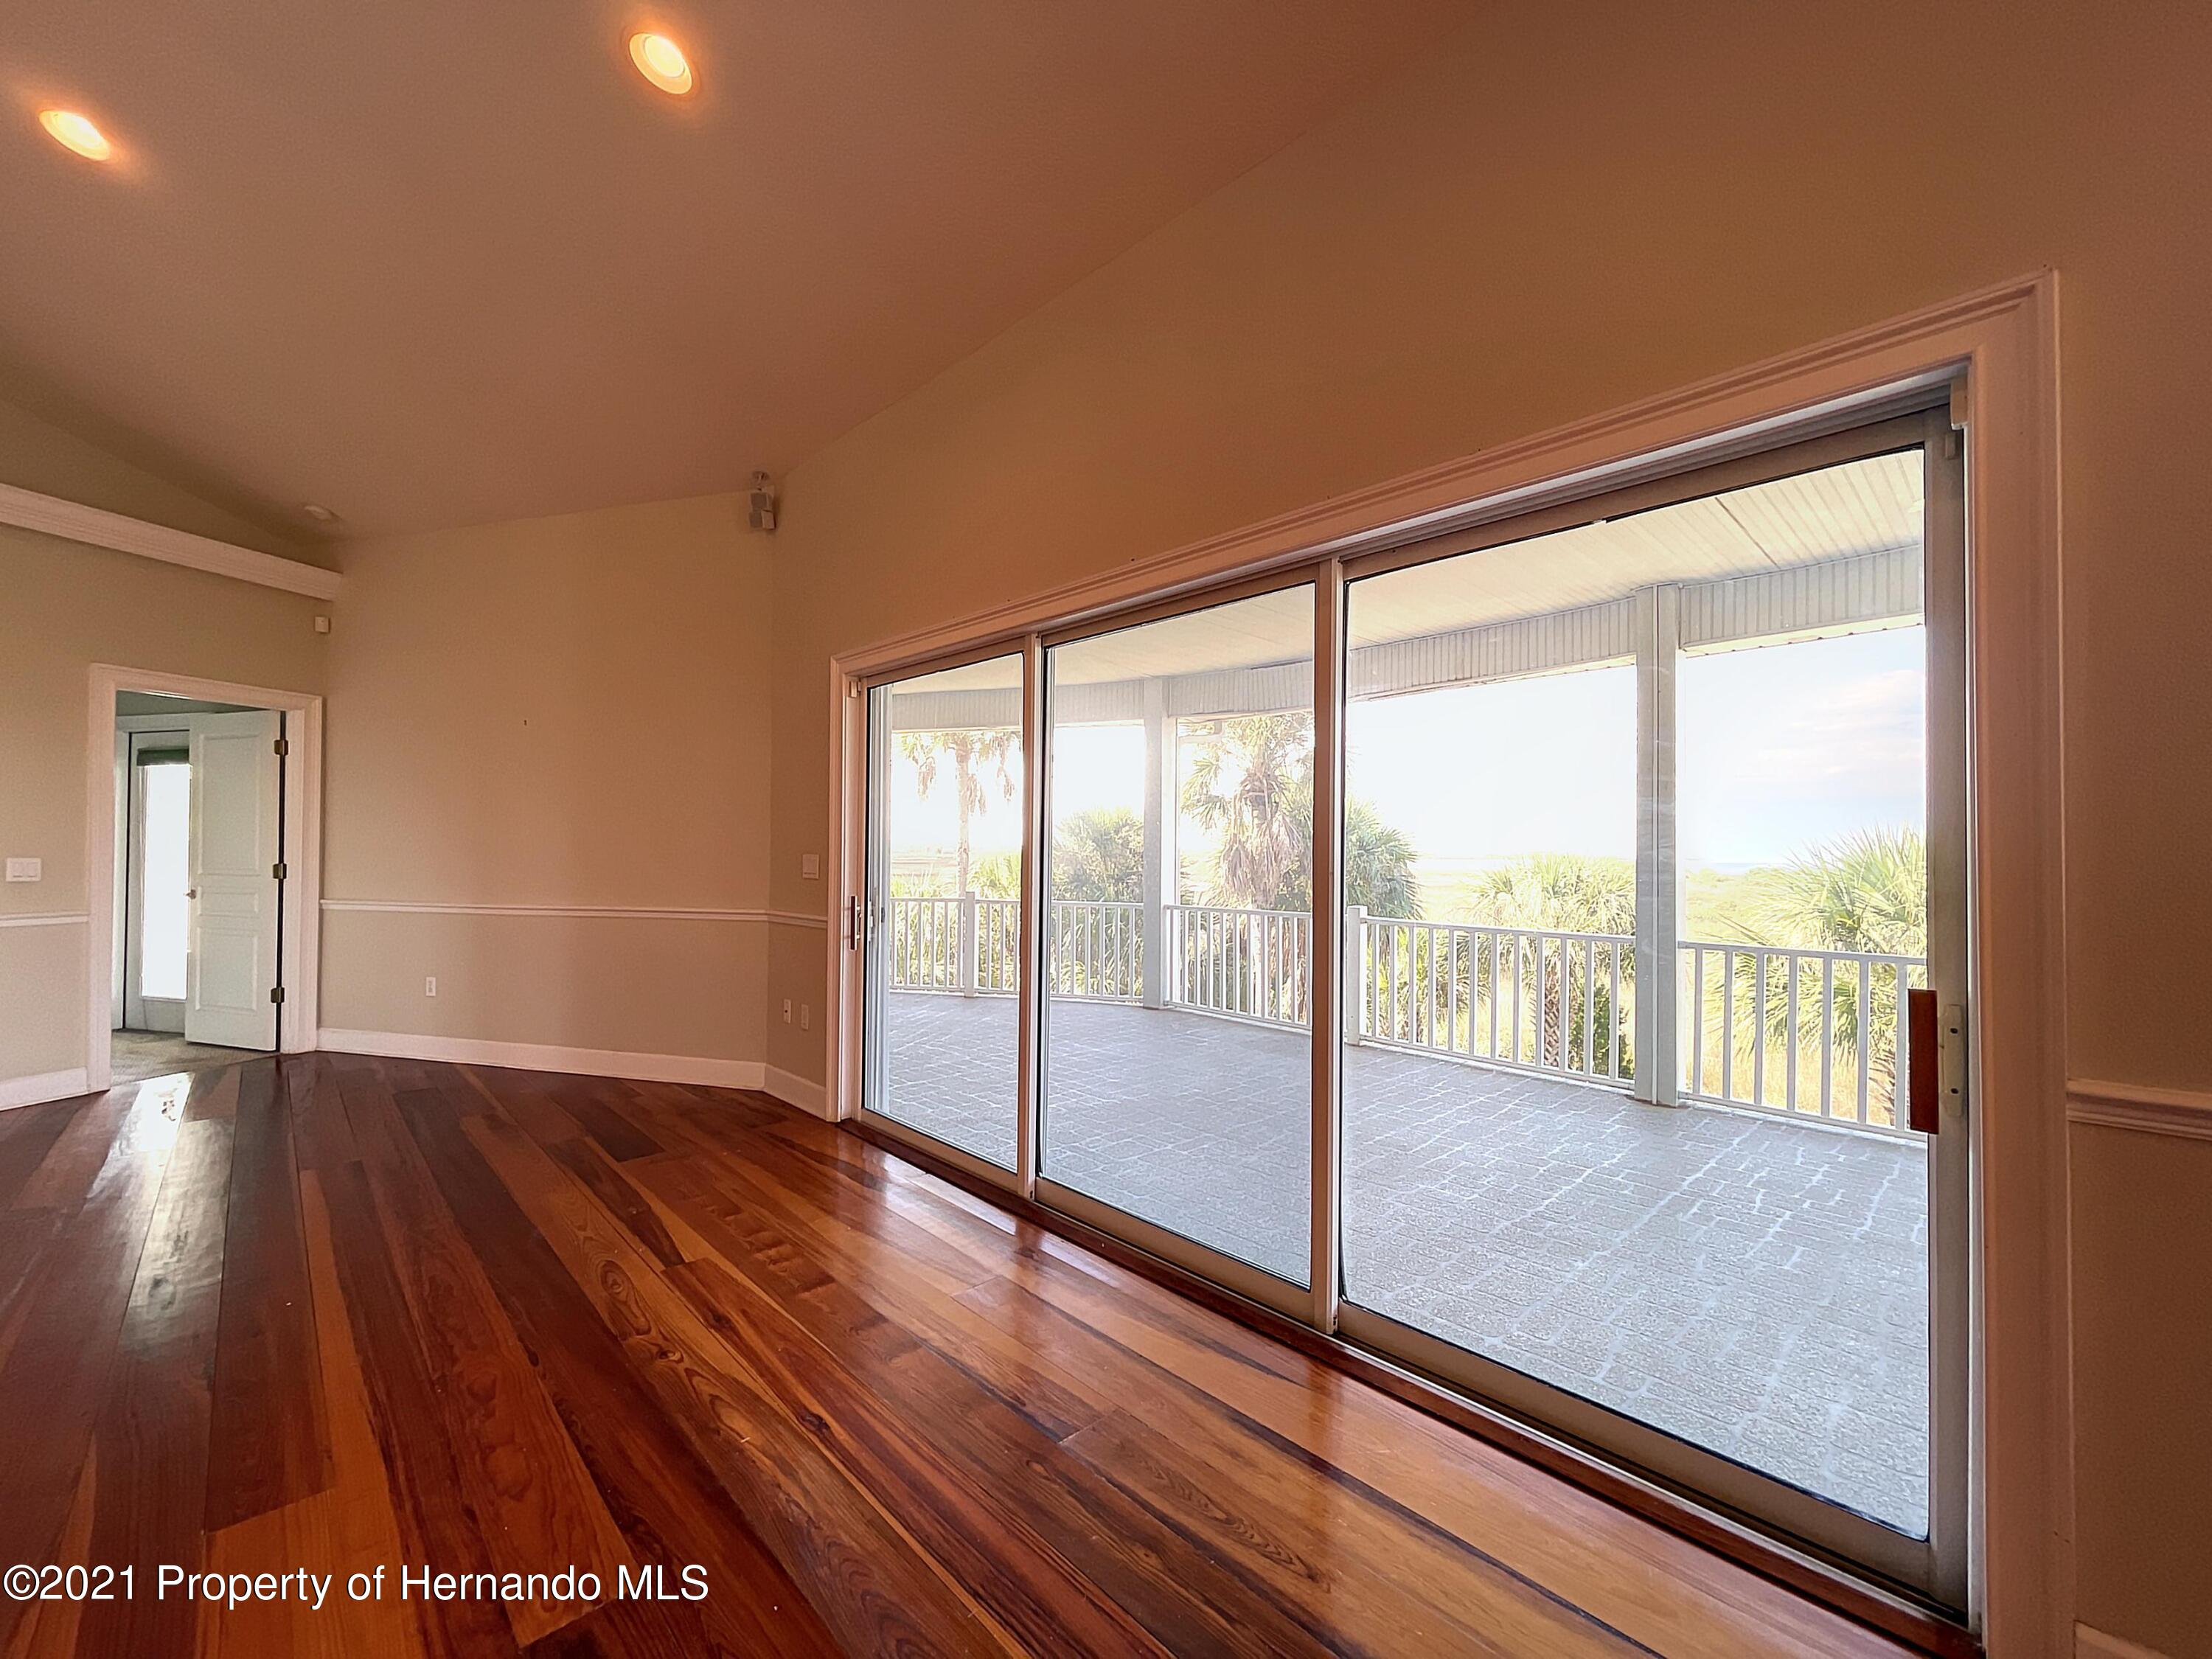 Image 11 of 101 For 1091 Osowaw Boulevard